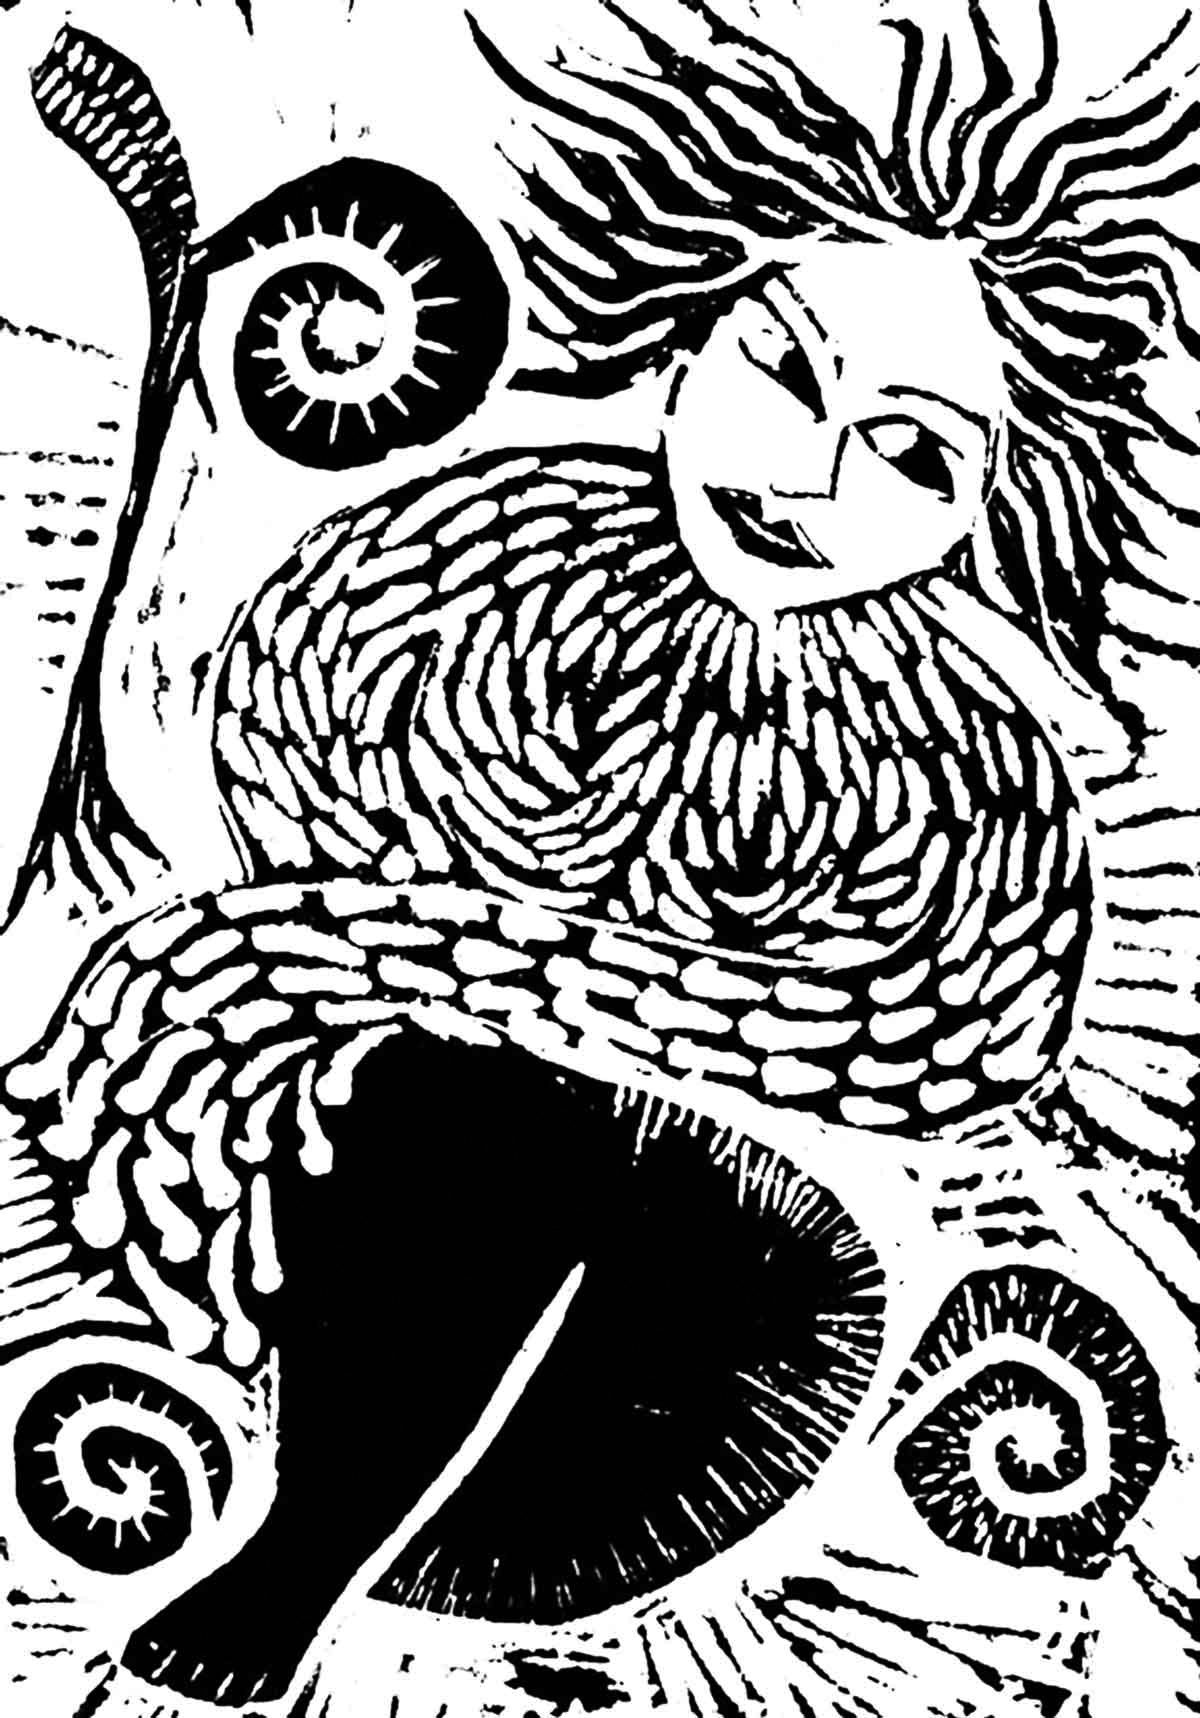 Wood nymph - woodcut